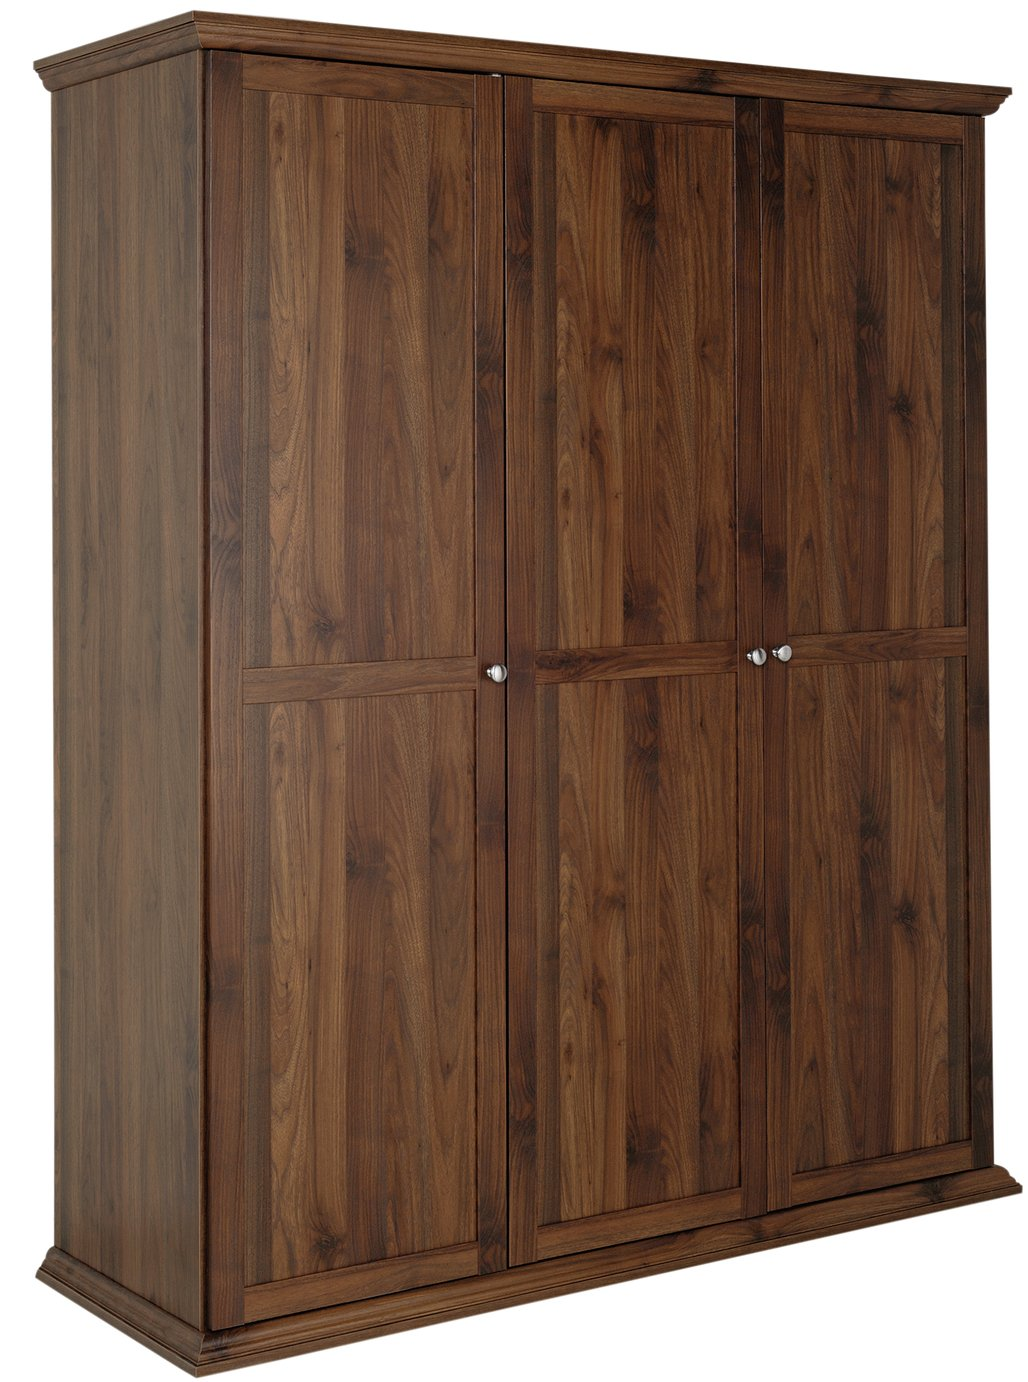 Argos Home Canterbury 3 Door Wardrobe - Walnut Effect